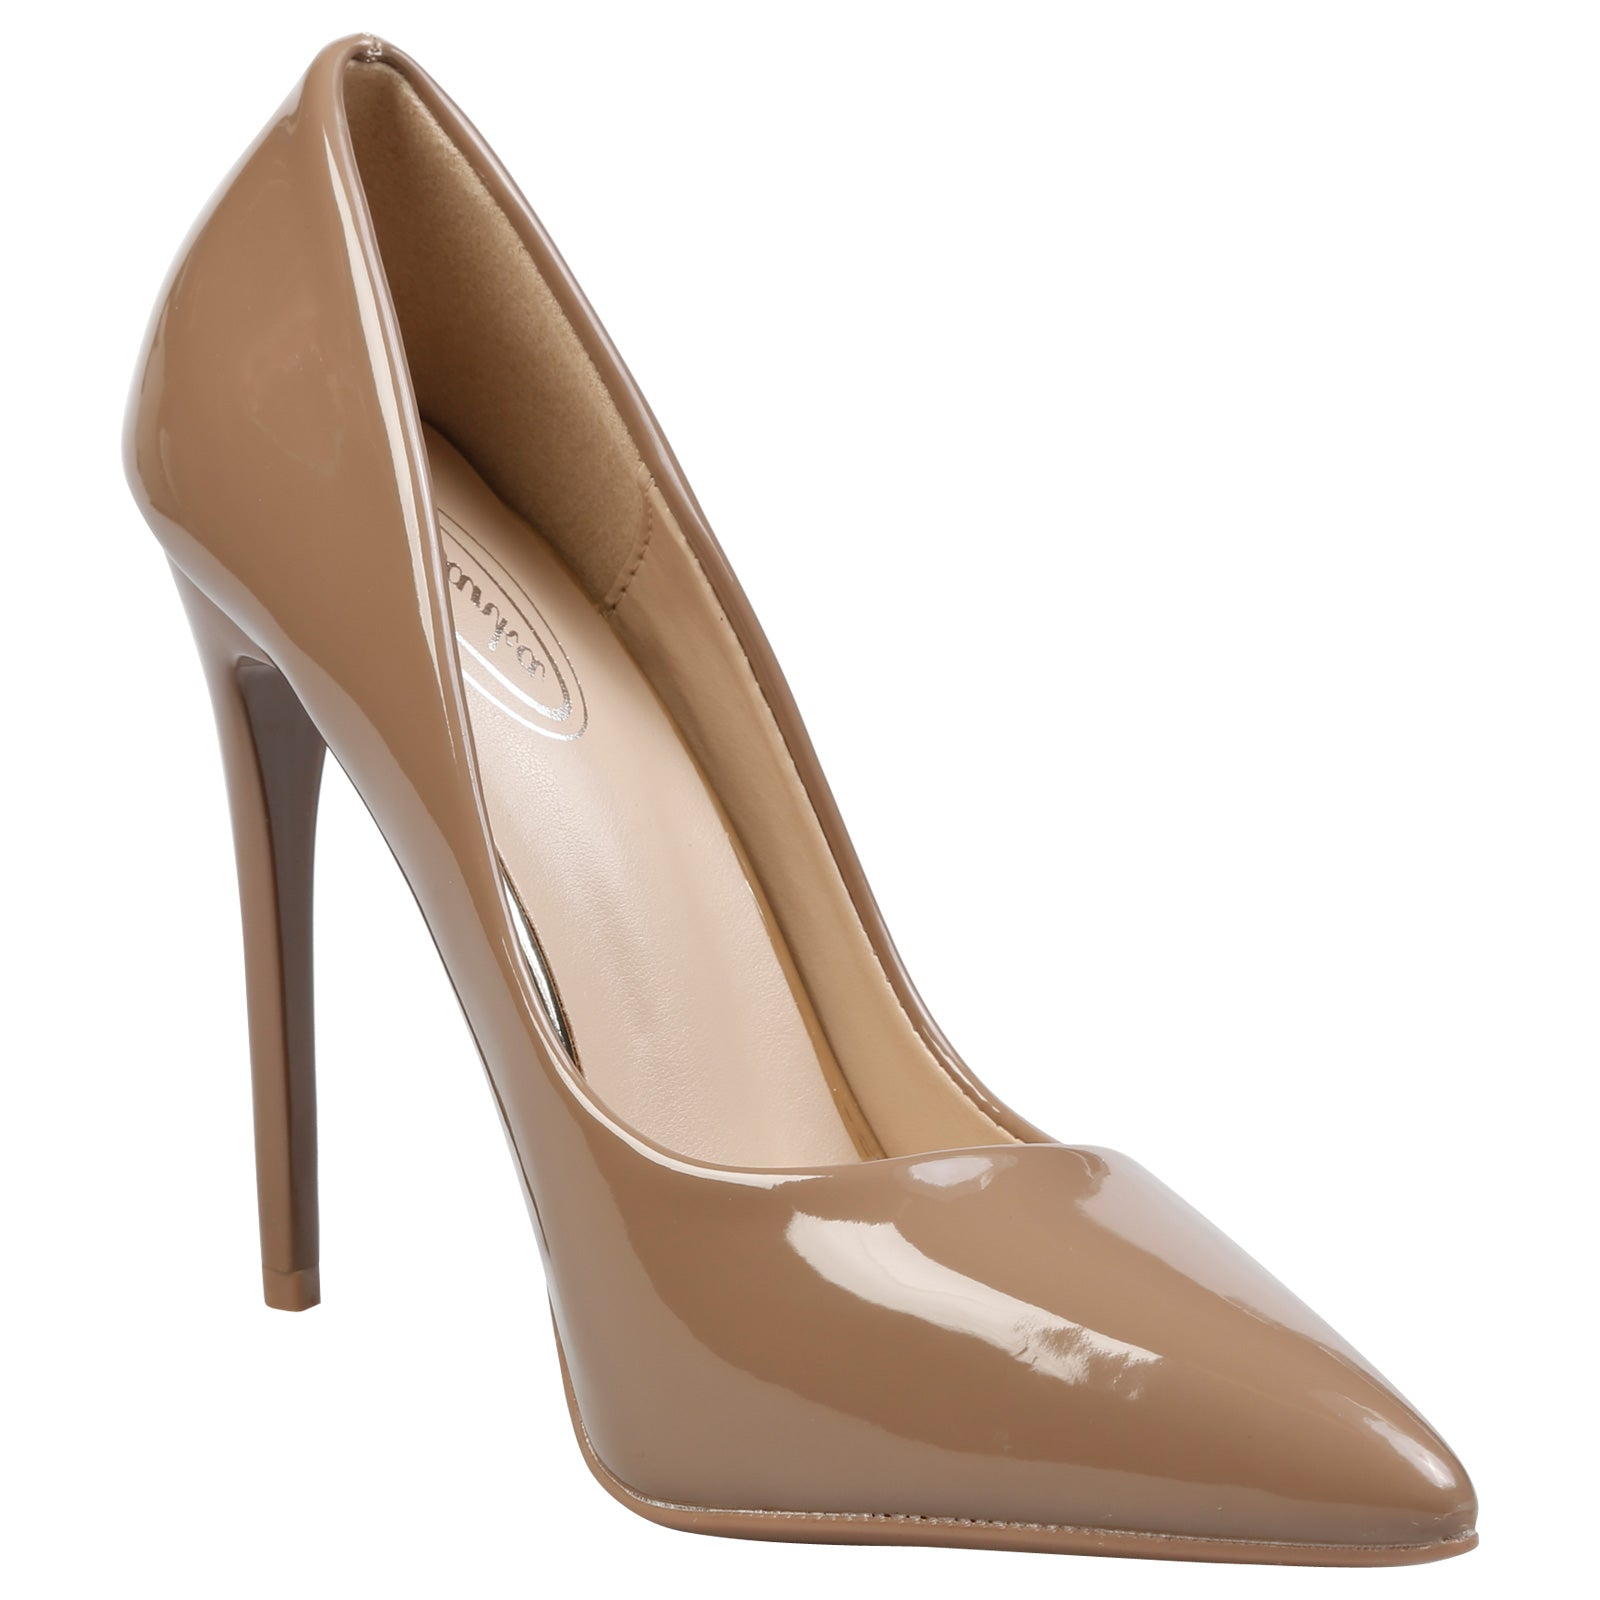 Danita Stiletto Heel Court Shoes in Tan Patent - Feet First Fashion